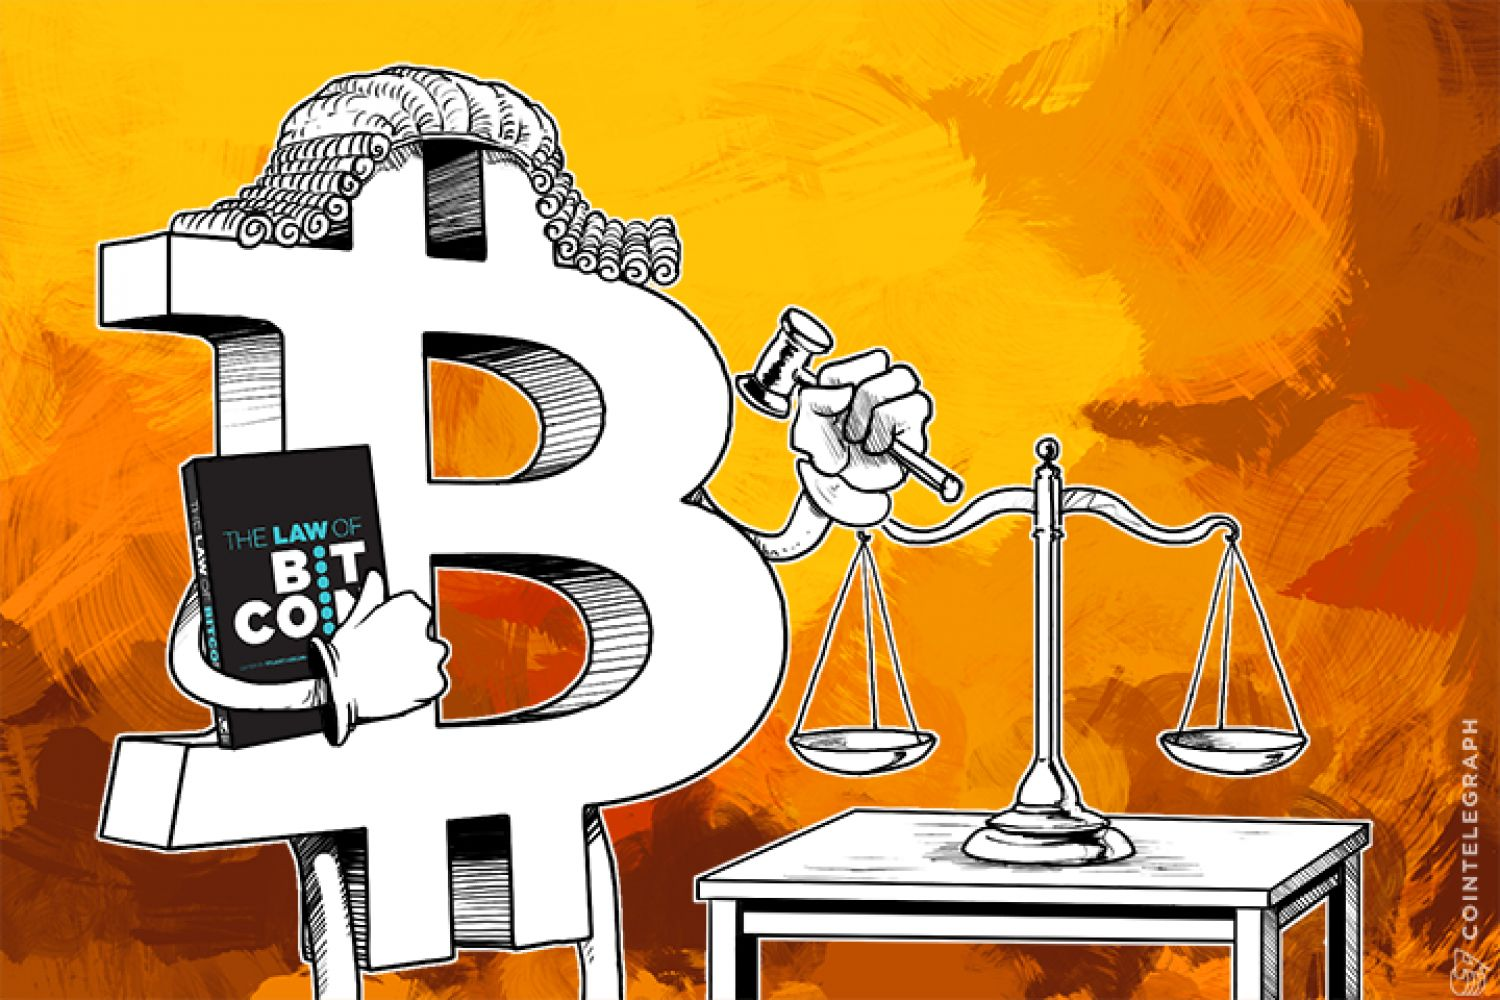 Bitcoin and scales of justice